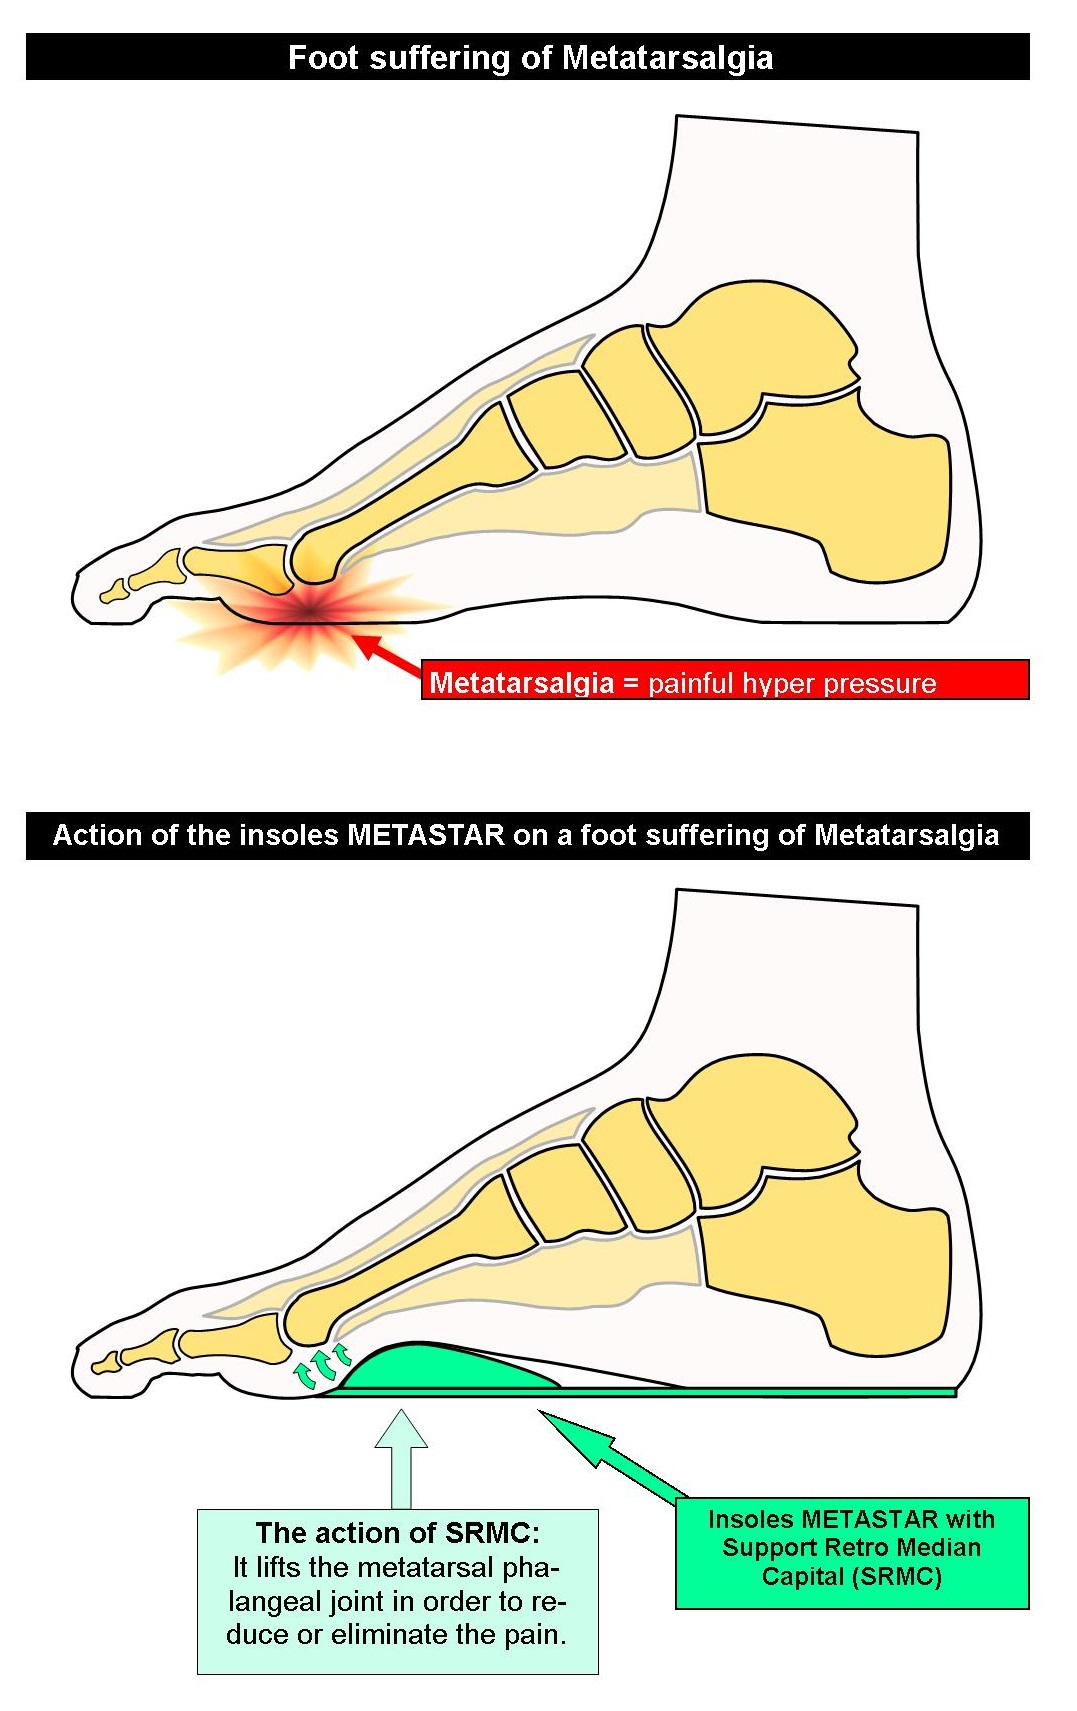 Median Metatarsalgia